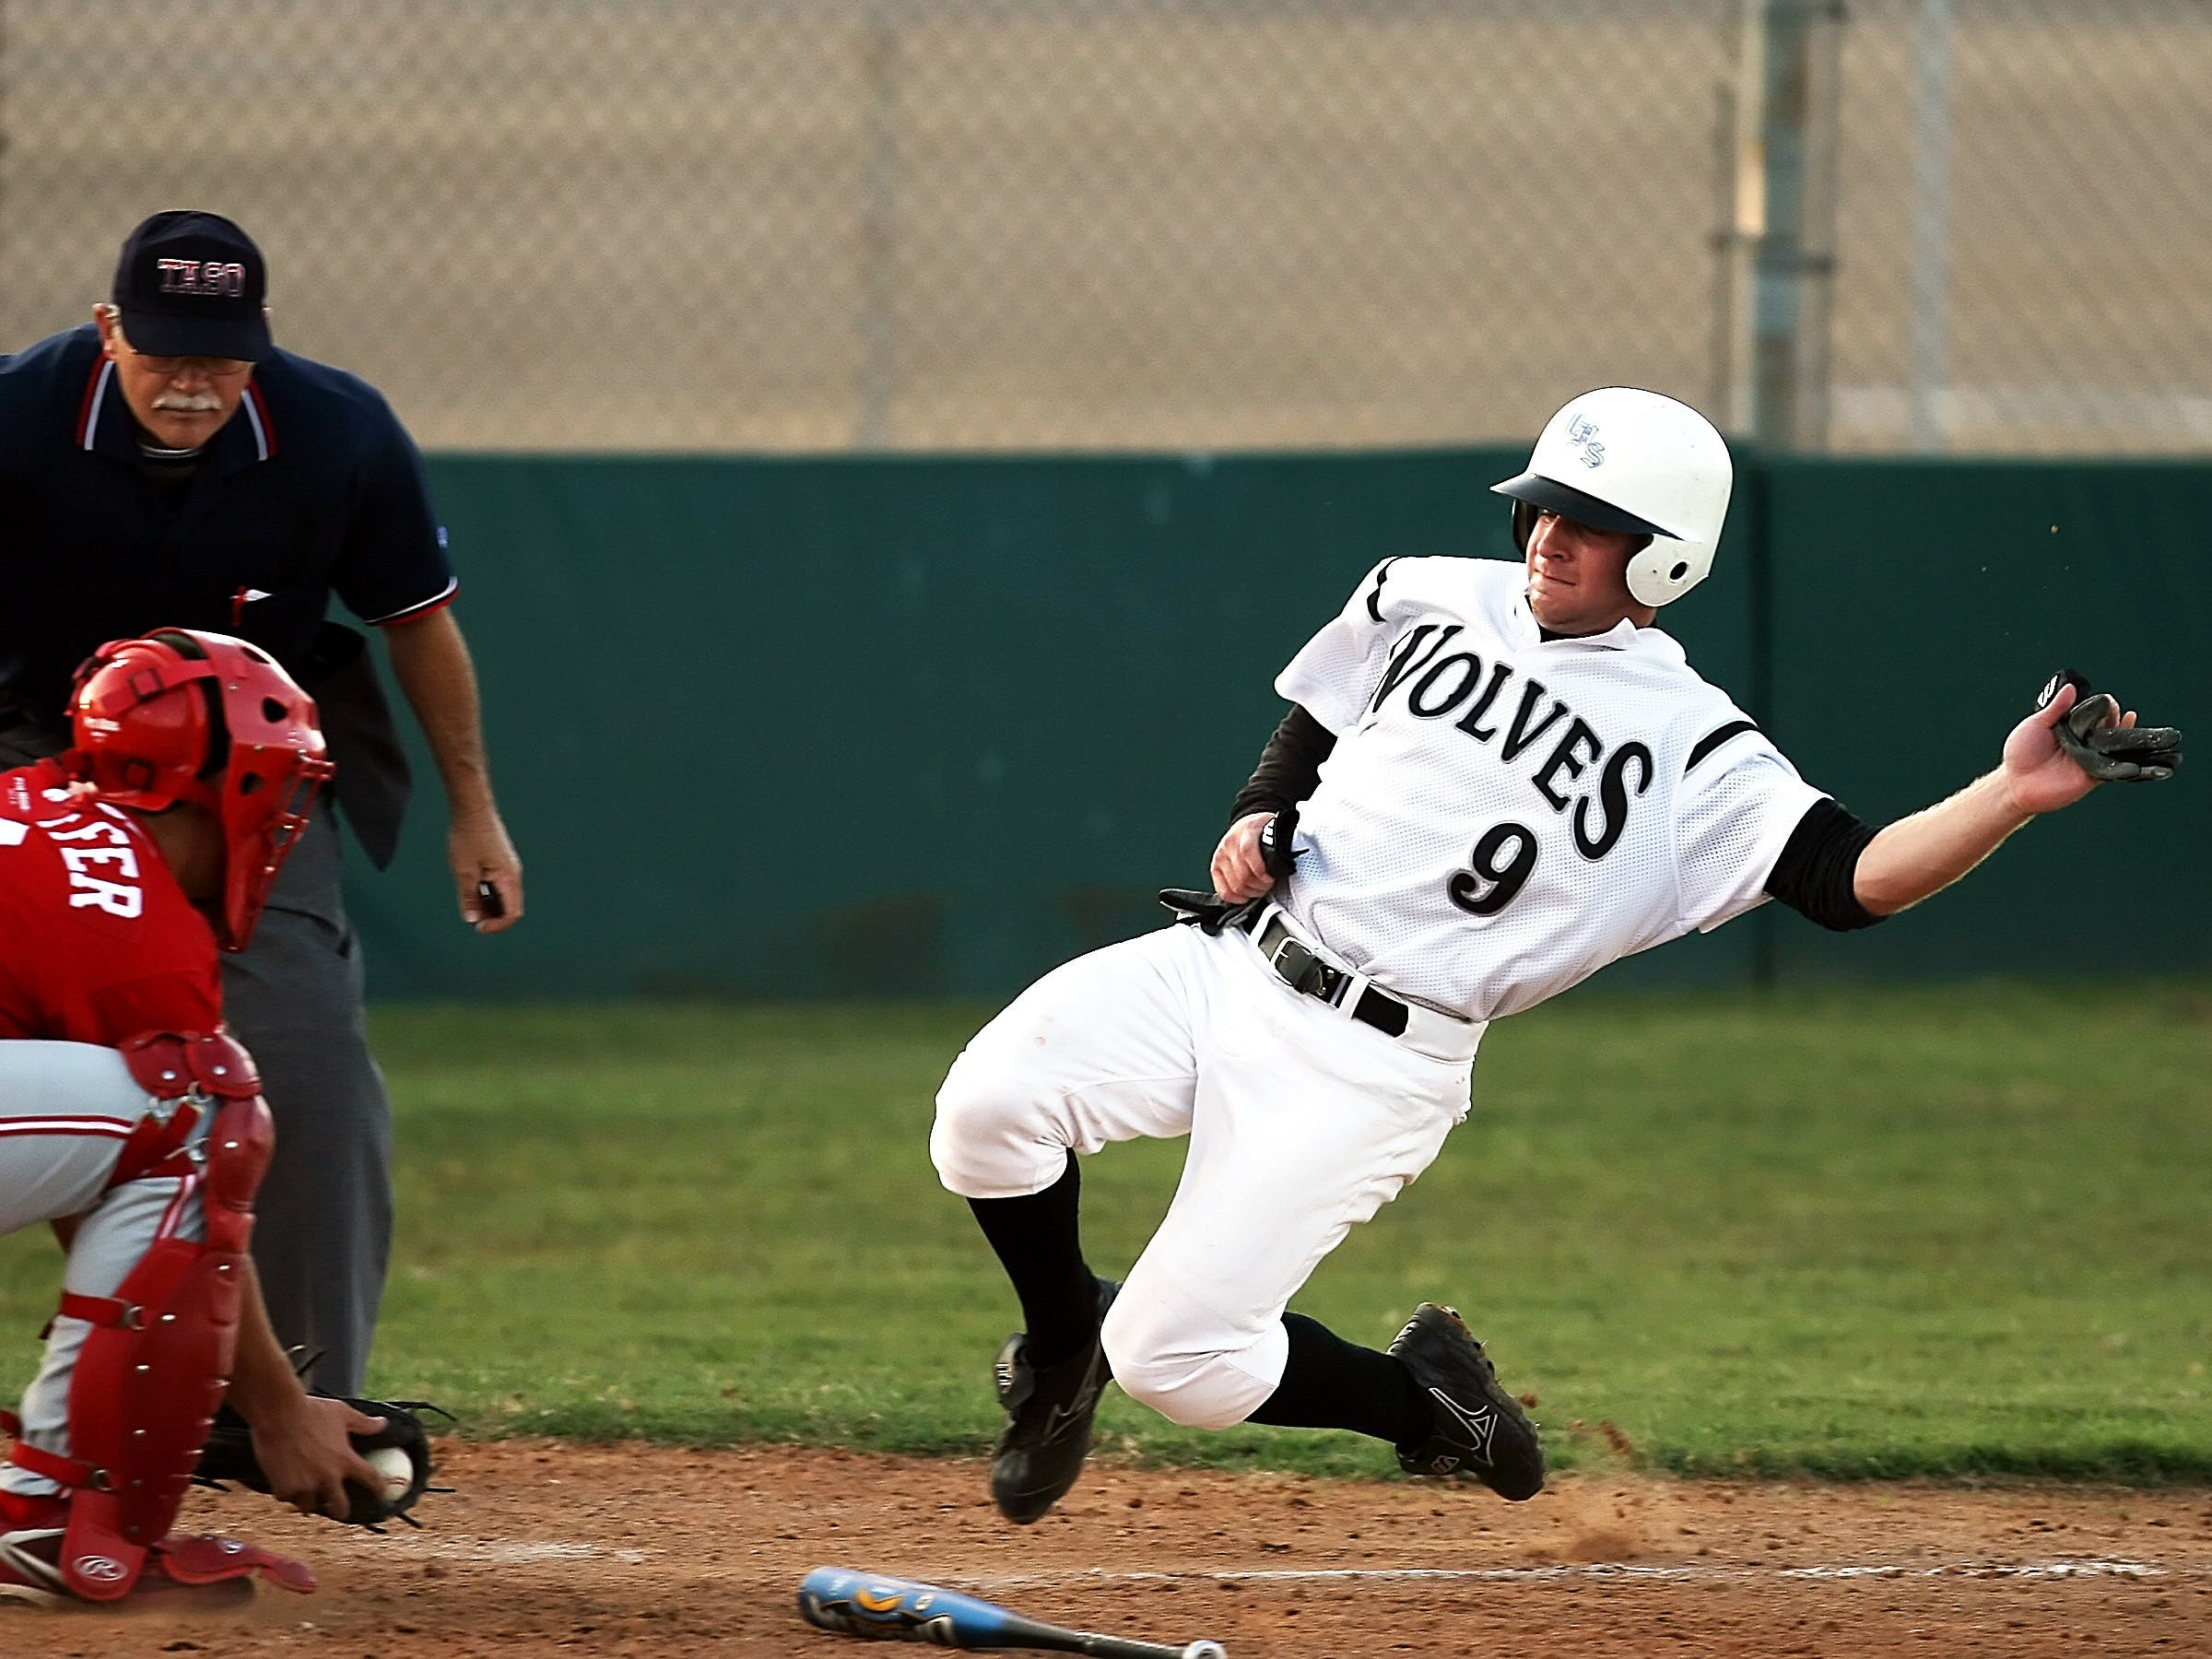 Male Baseball Player in Wolves 9 Jersey Sliding in Front of Male in Catchers Uniform Holding Baseball on Brown Mitt